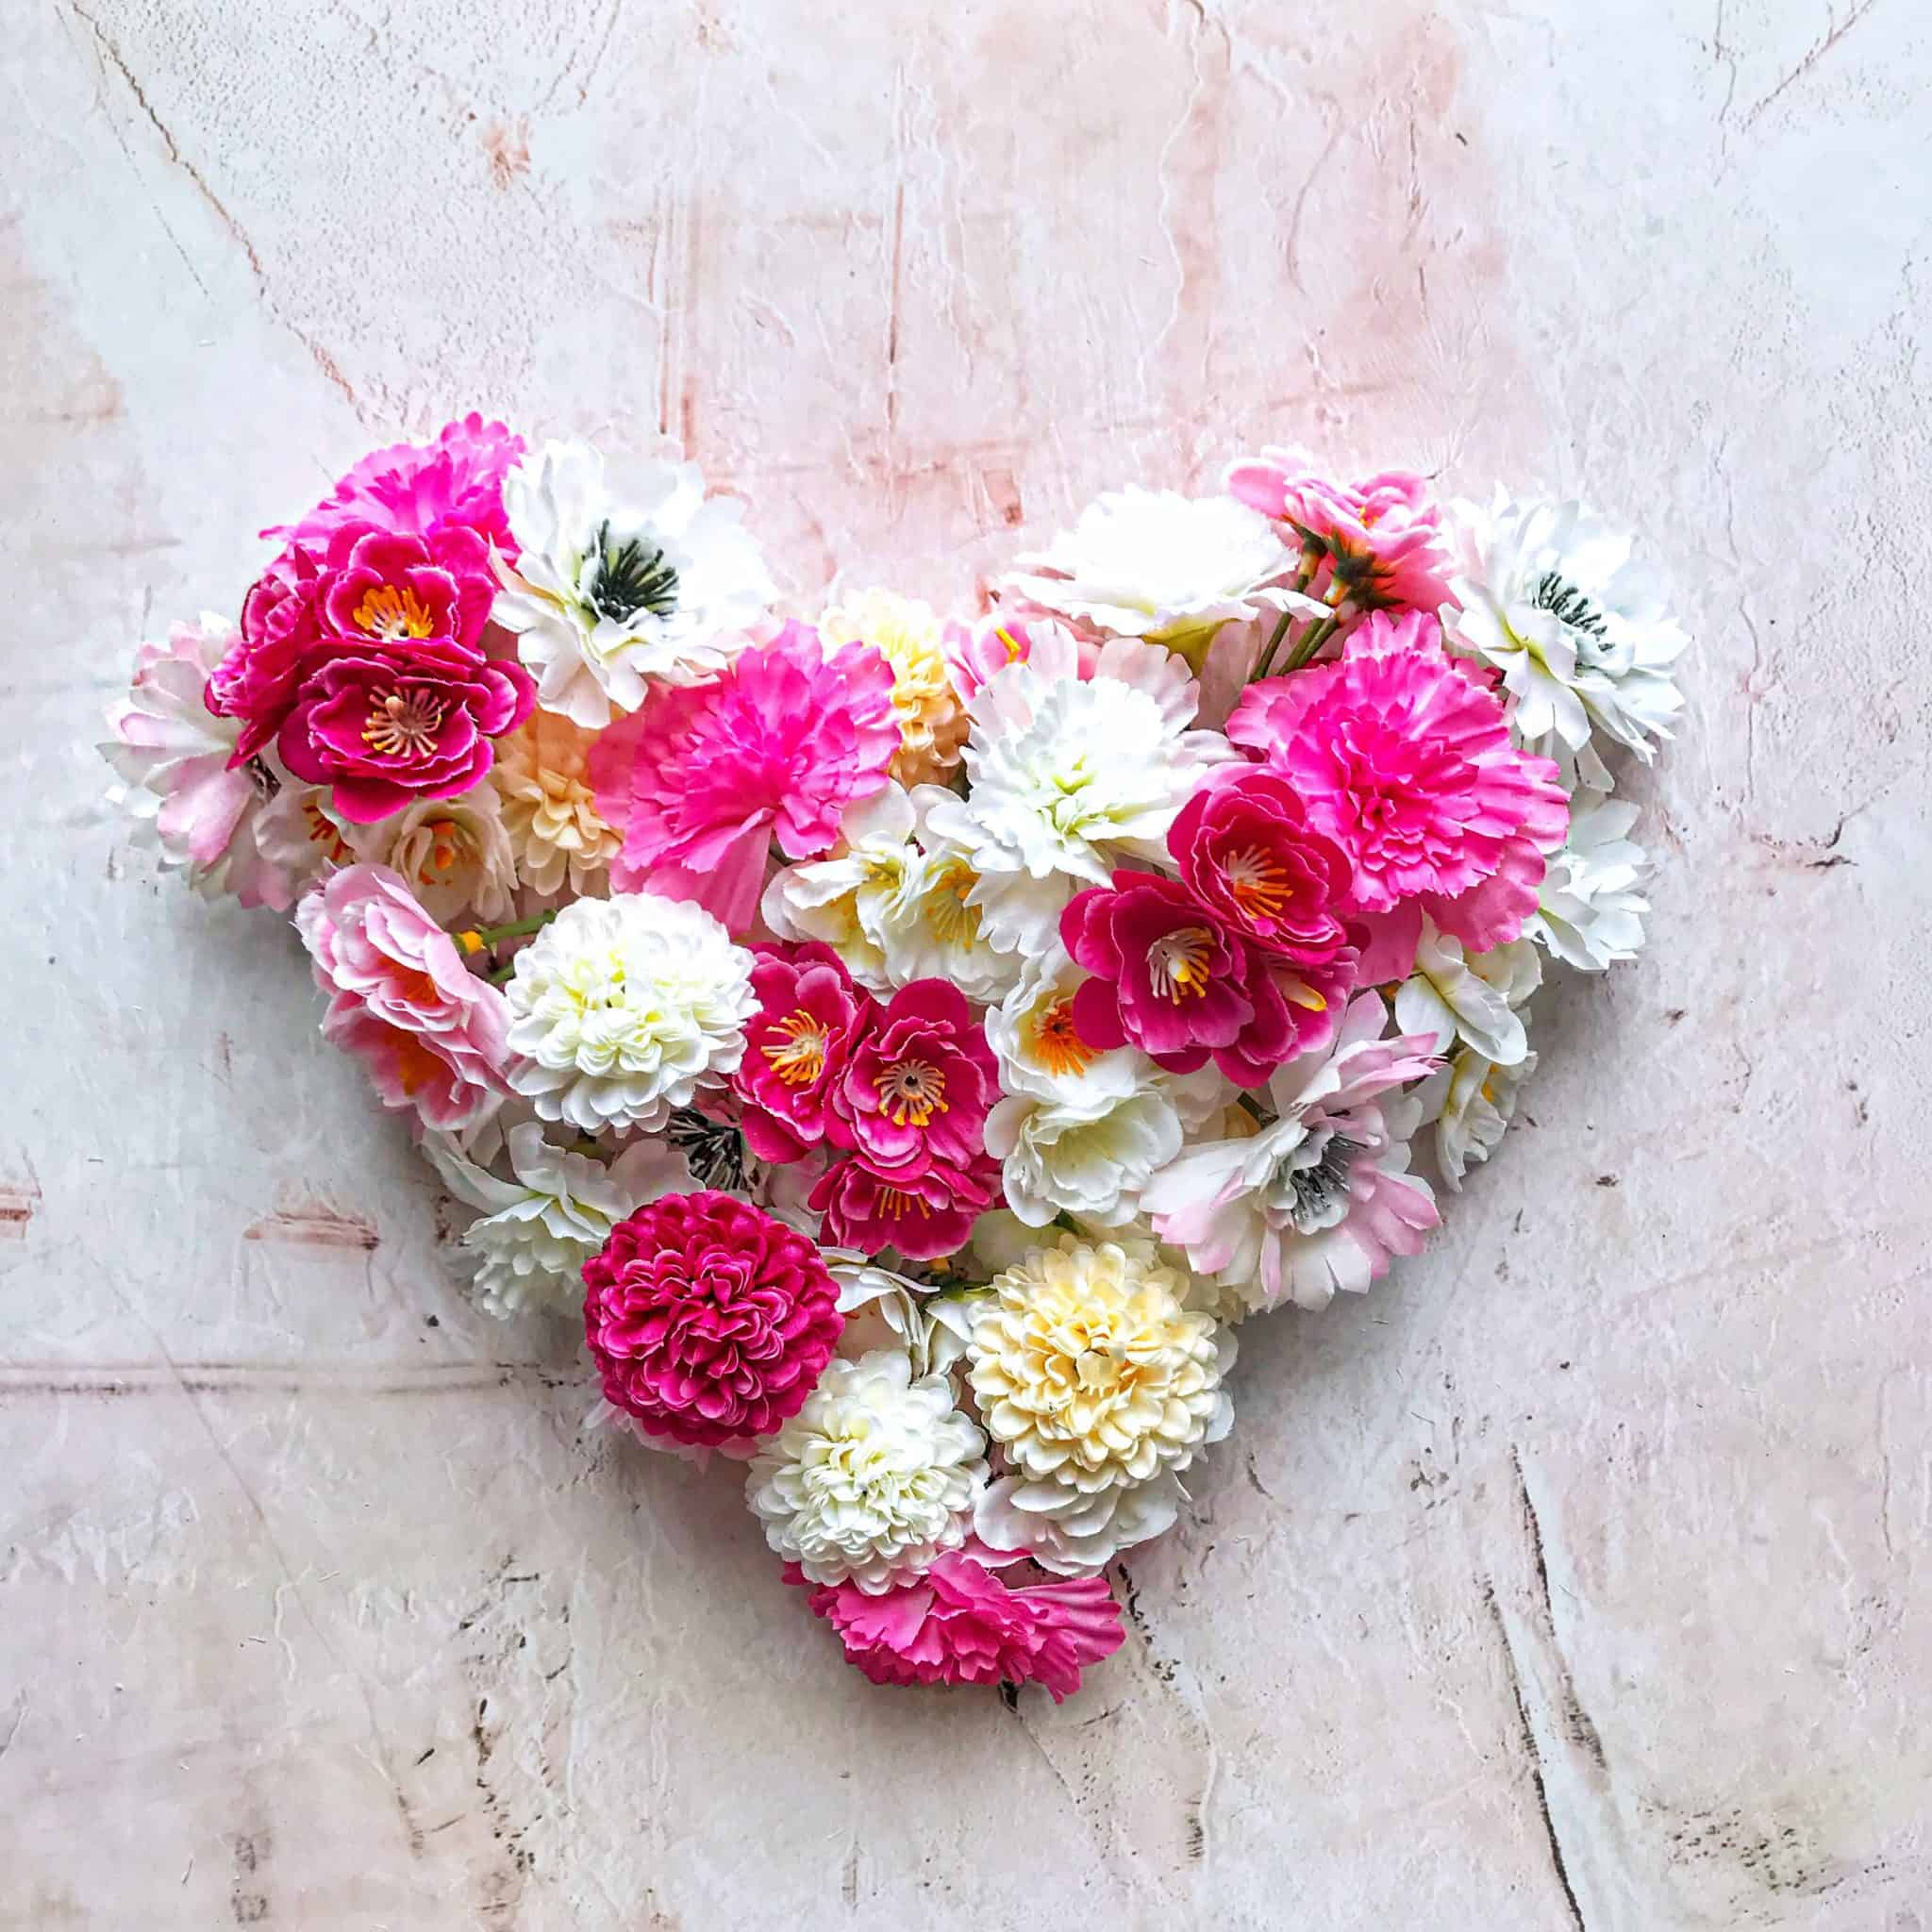 Heart made of fake flowers from Hema